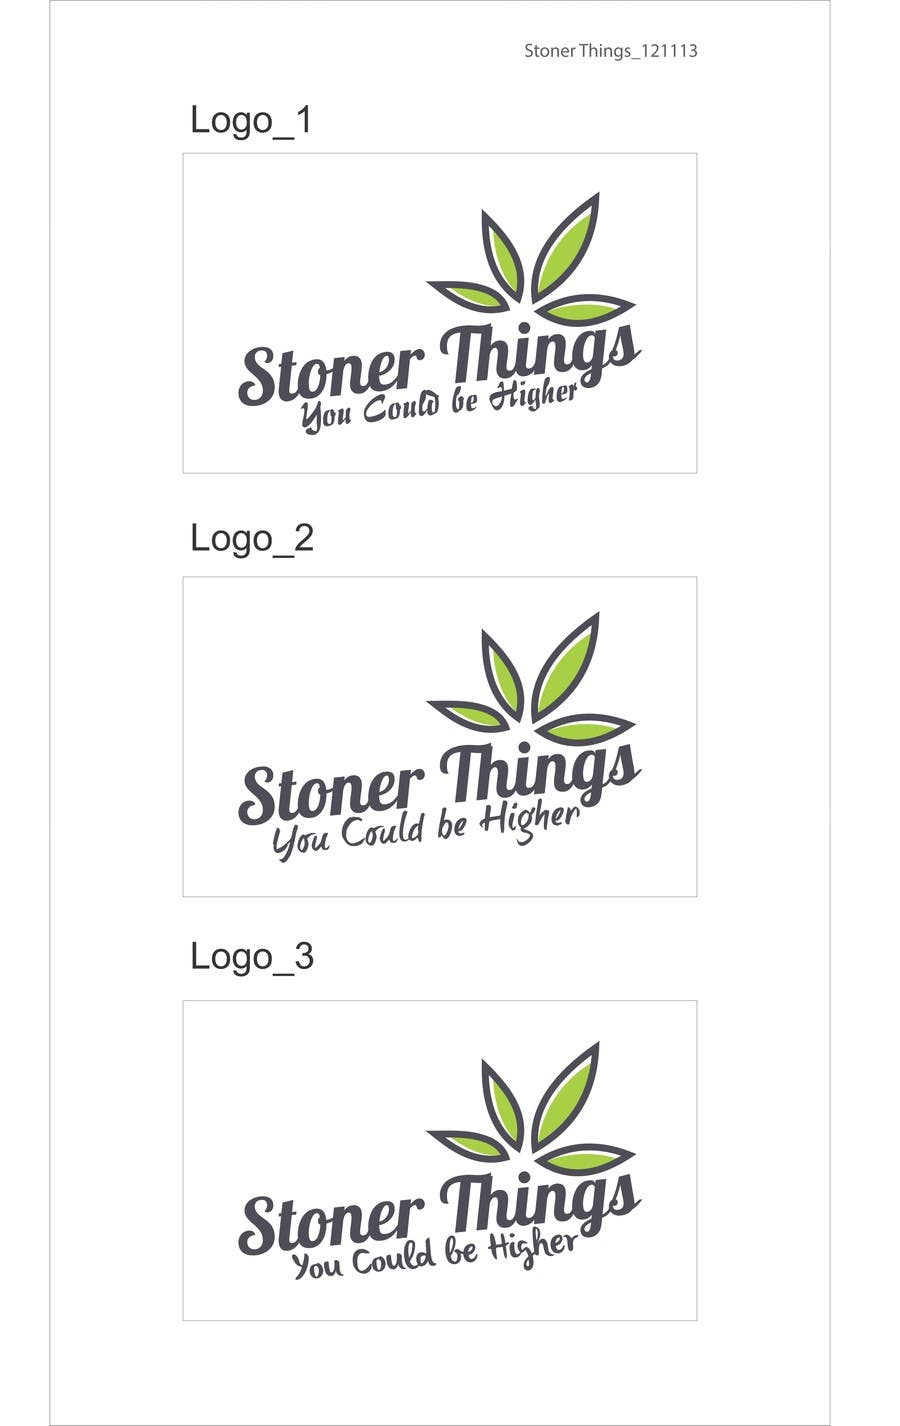 Konkurrenceindlæg #53 for Design a Logo for Stoner logo for shirt brand